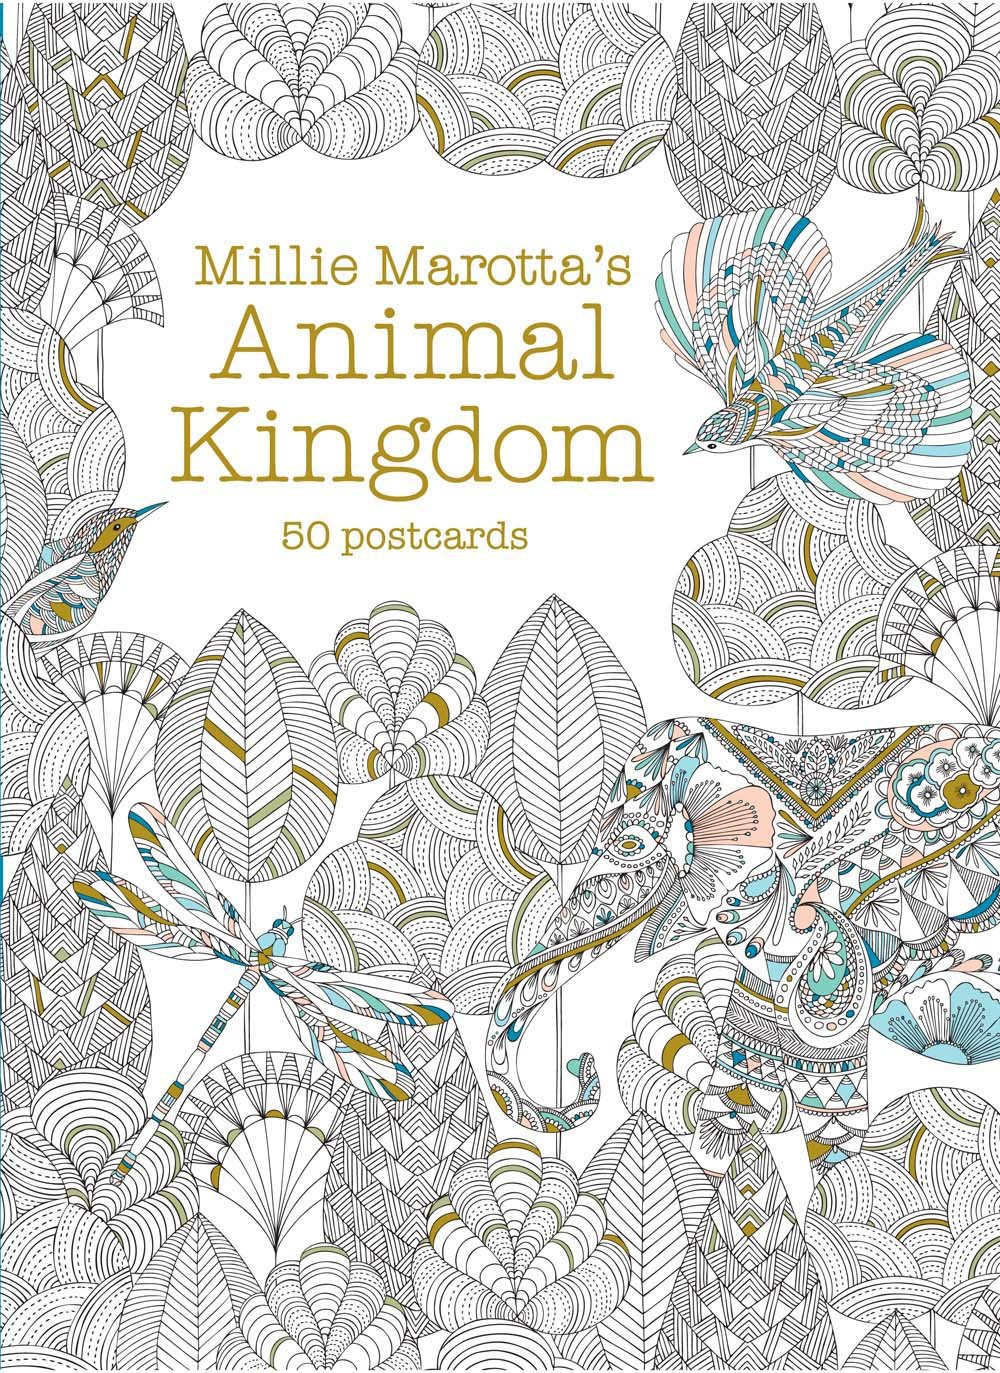 amazoncom millie marottas animal kingdom postcard box 50 postcards a millie marotta adult coloring book 9781454709282 millie marotta books